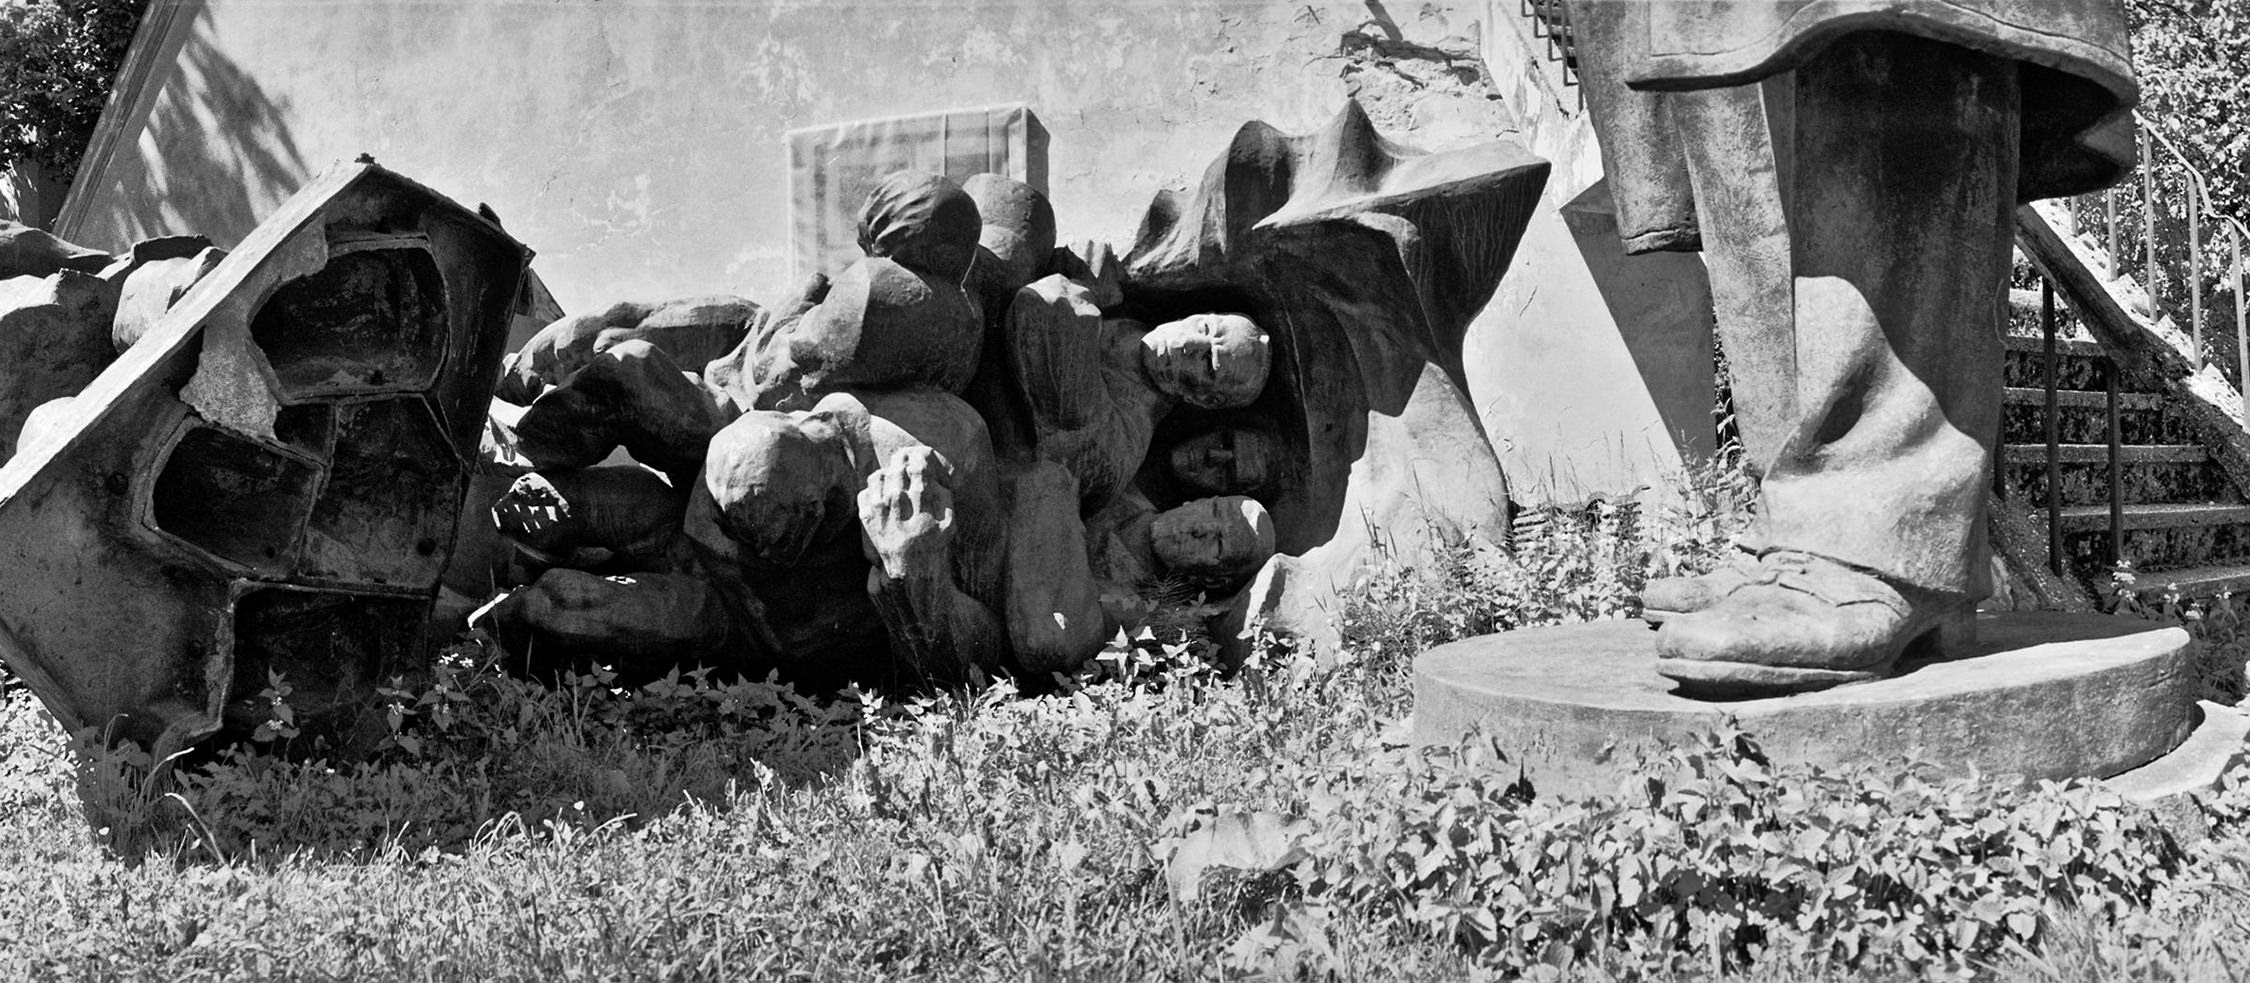 Broken World War Two monuments of USSR army soldiers in the park on the ground